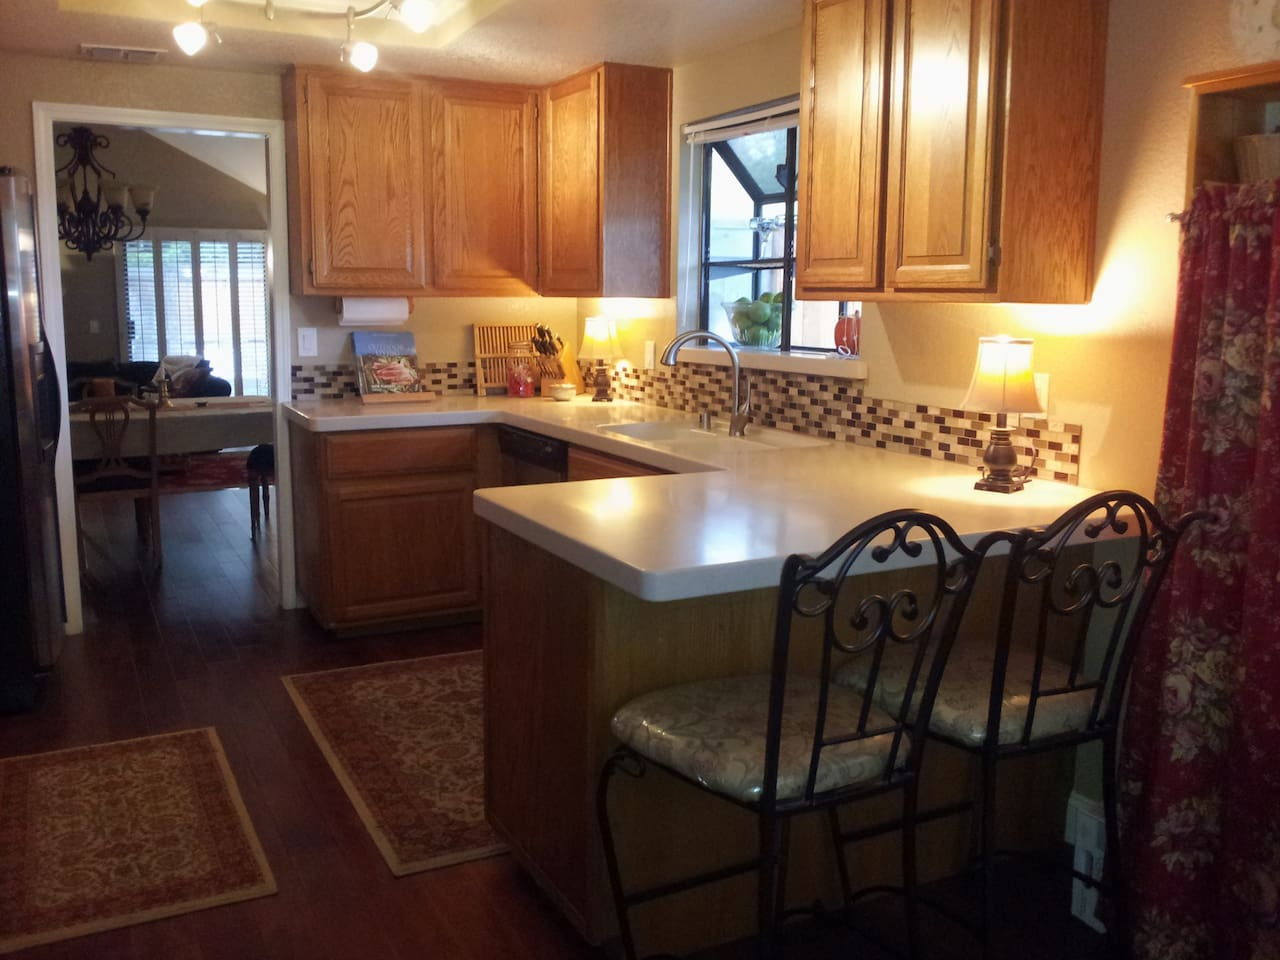 Well equipped kitchen with plenty of space to cook.